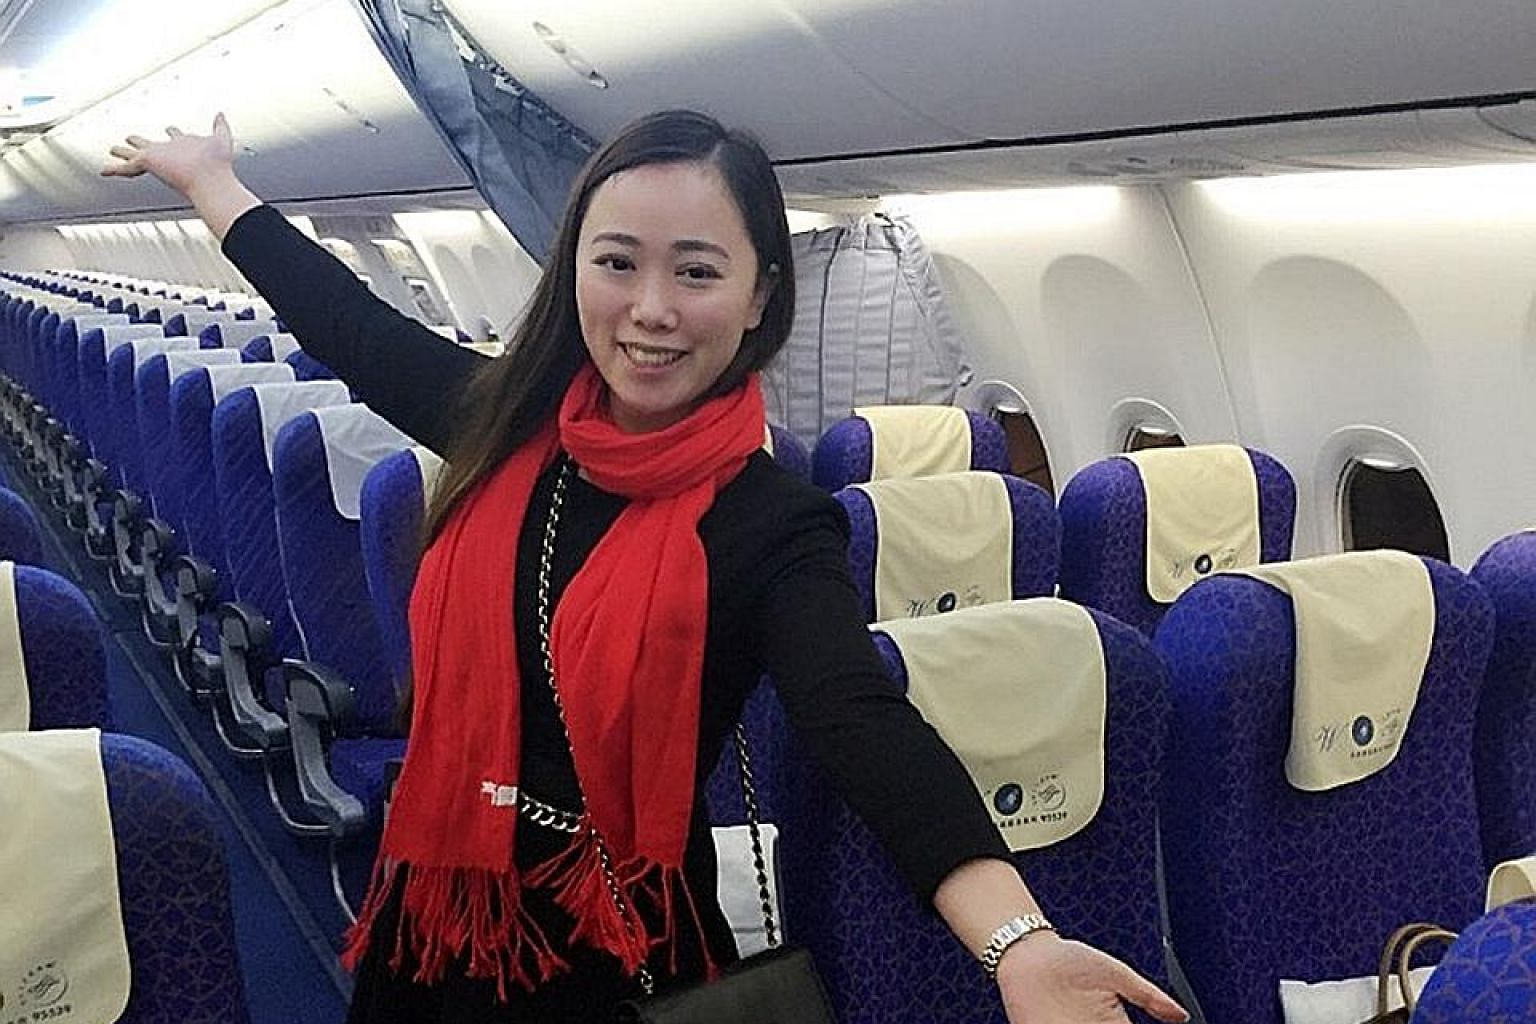 Ms Zhang found herself the sole passenger of a plane when a 10-hour delay winnowed down other travellers. Her online posts of the experience drew hundreds of likes, shares and comments from Chinese netizens.